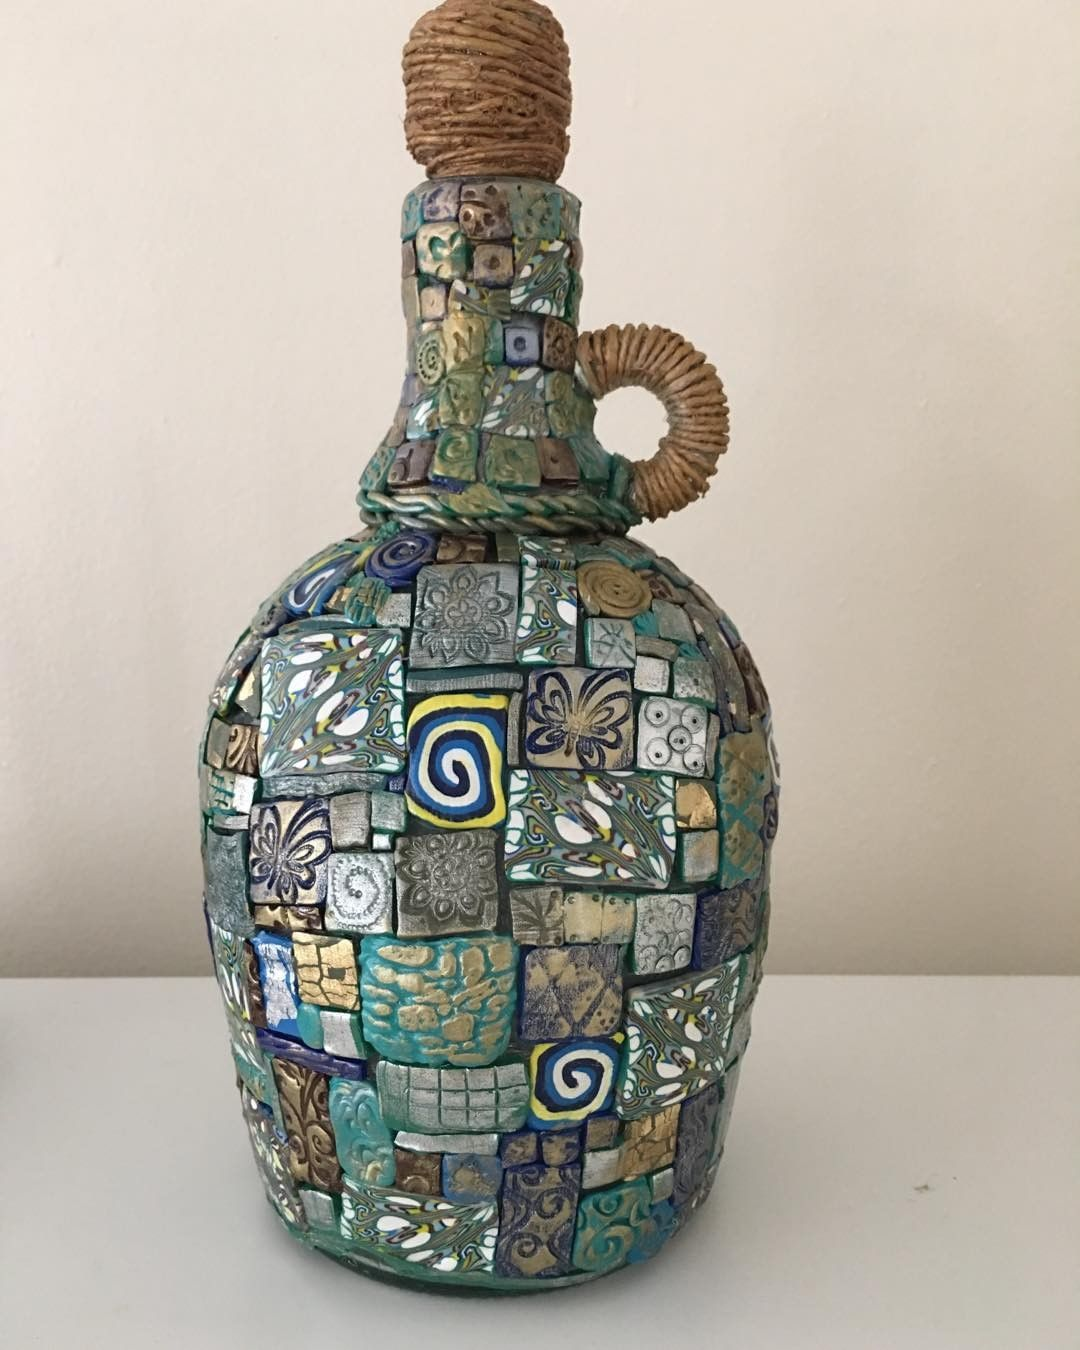 This decorated bottle is called quotThe mistery of Spanish Crownquot